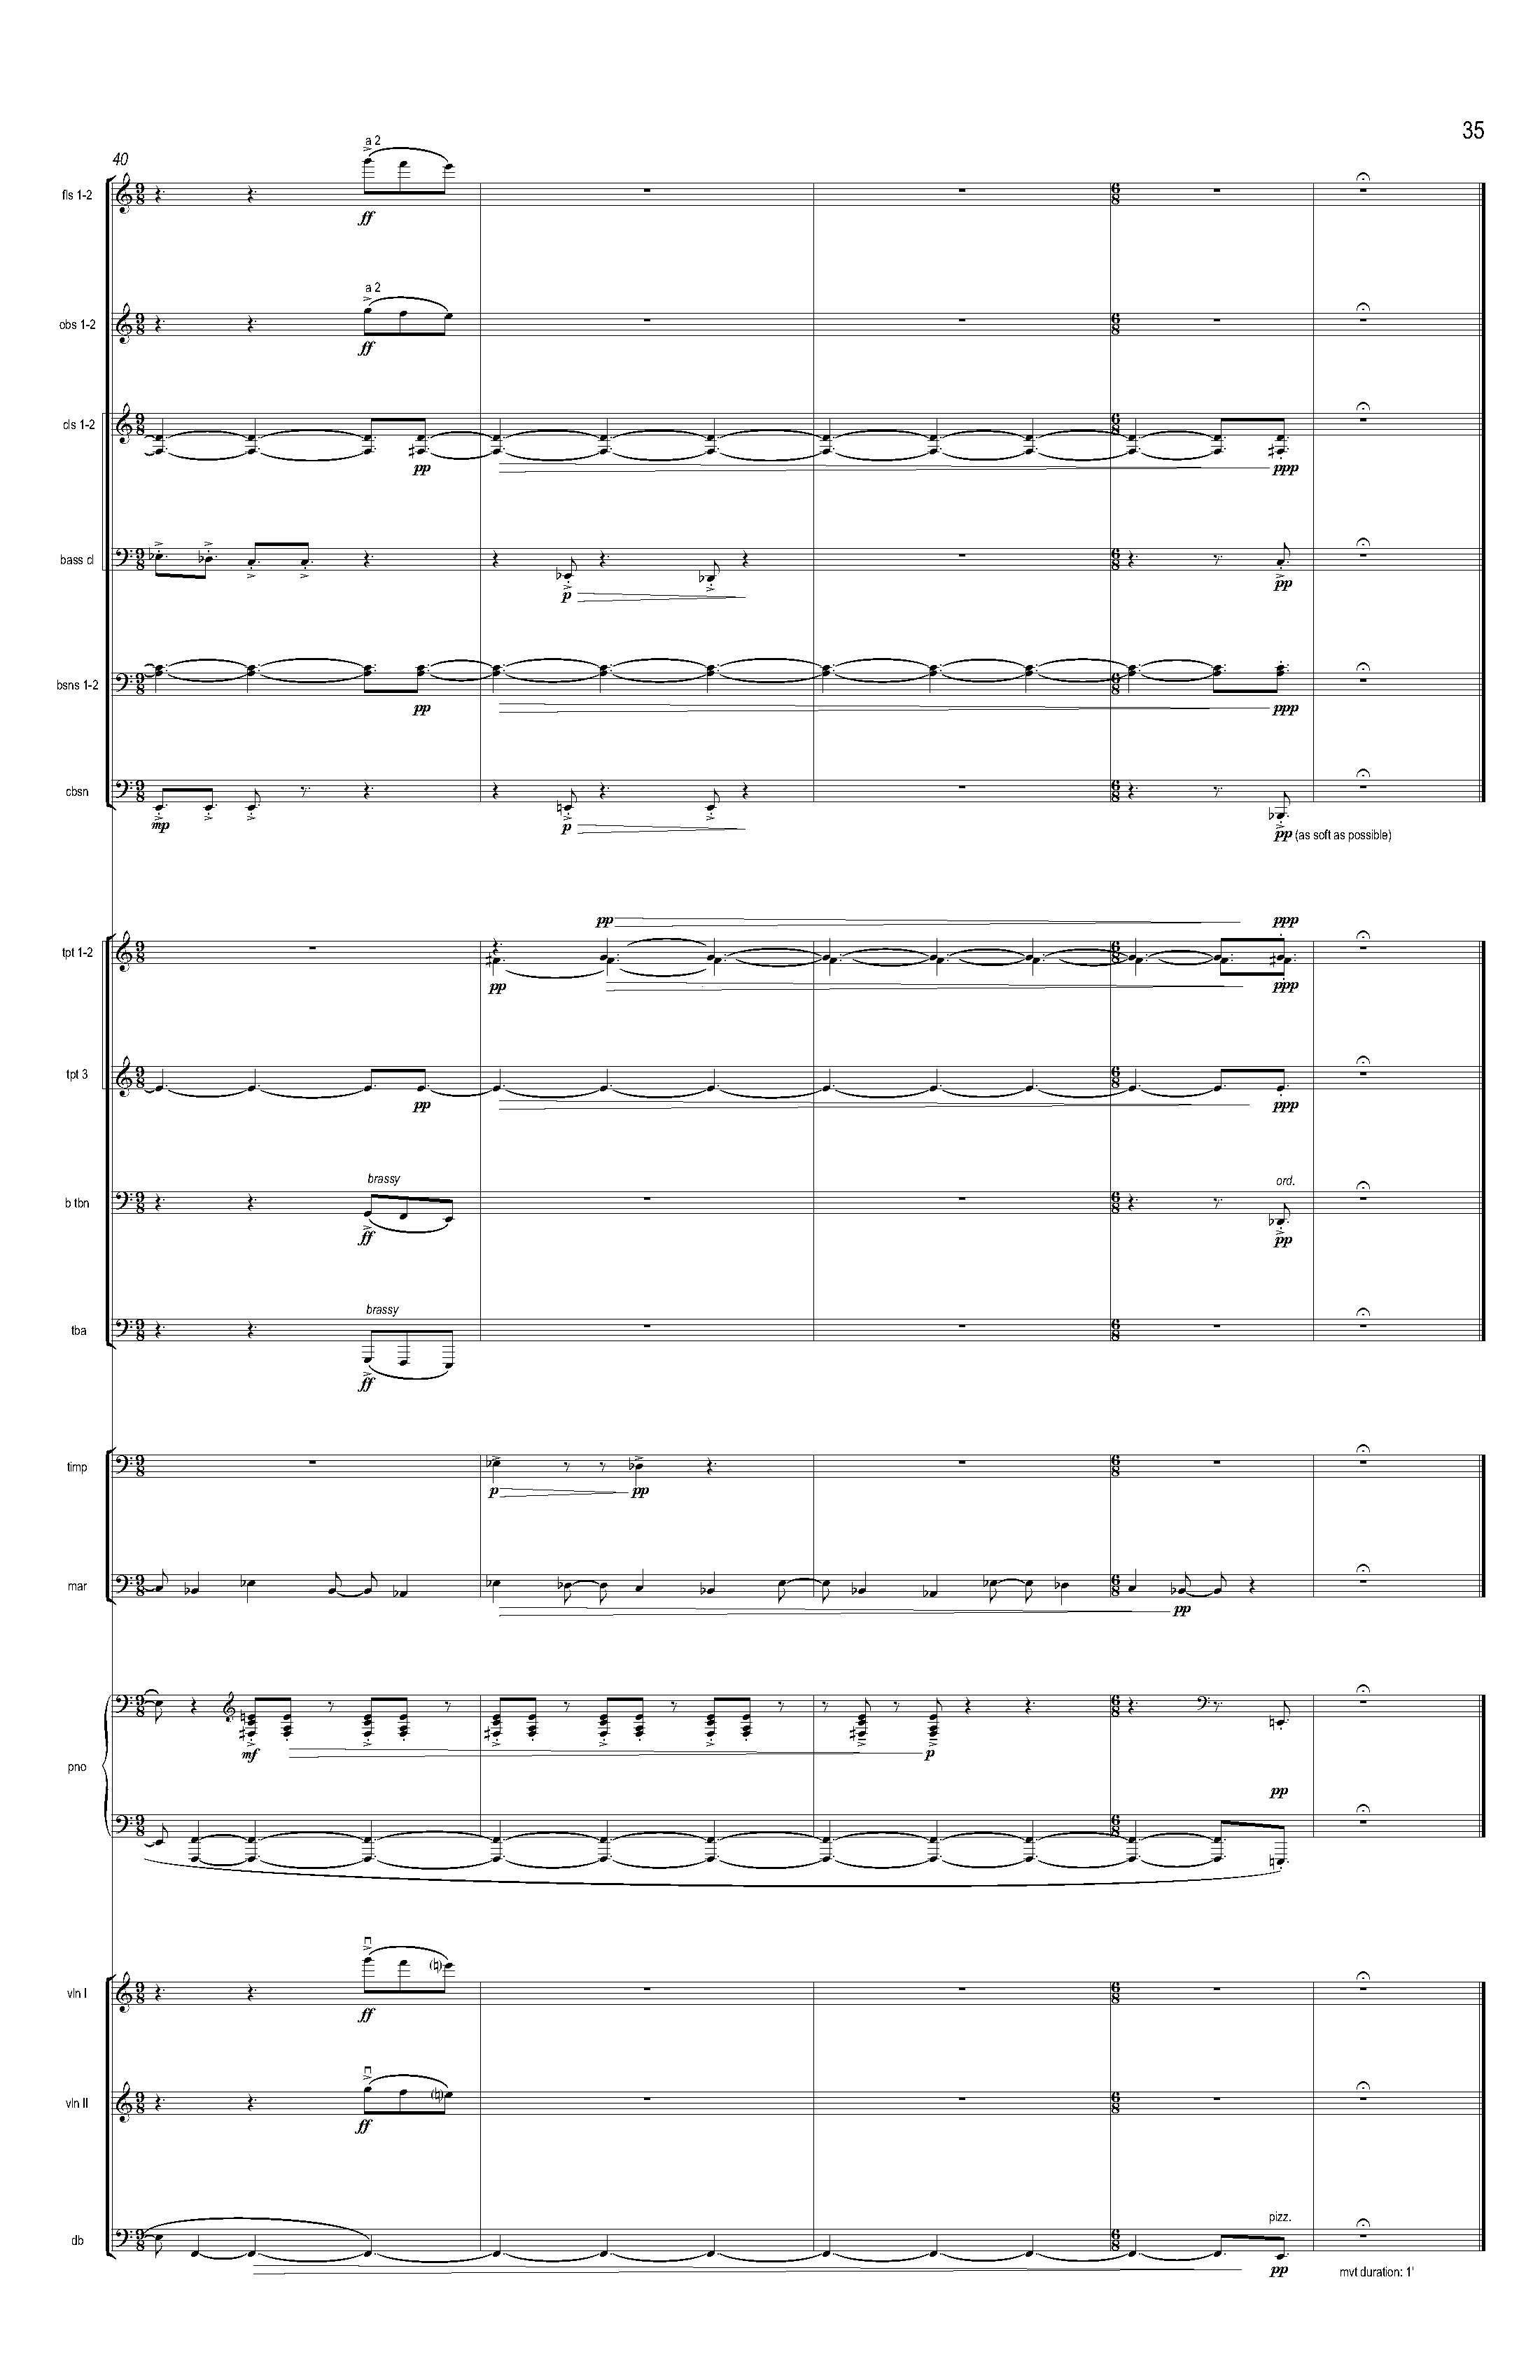 Ciach_Collective Uncommon REVISED_Full Score (Feb 2017)_Seite_41.jpg